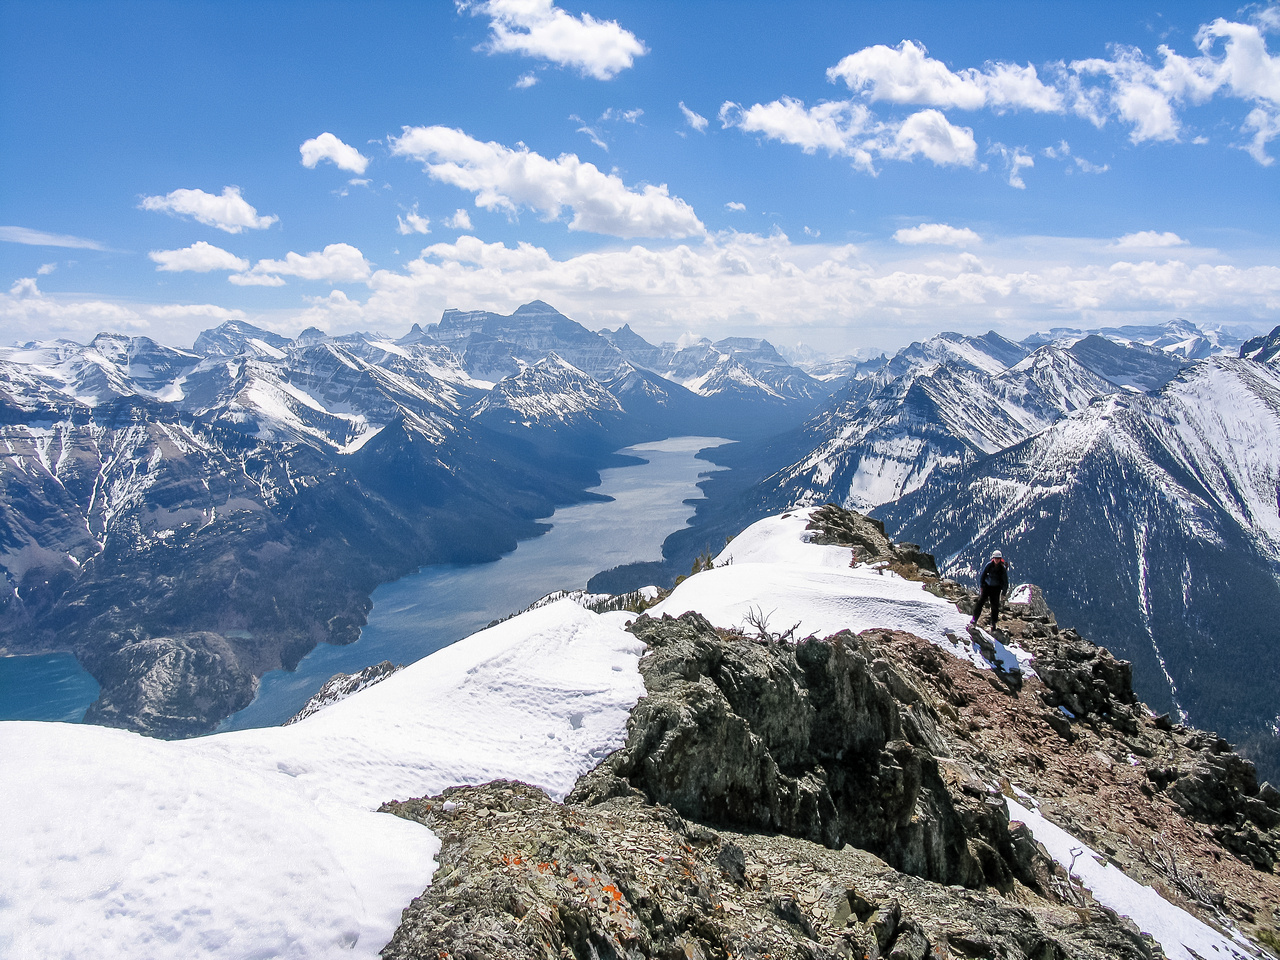 Views back down the south ridge over Waterton Lakes to Mount Cleveland.